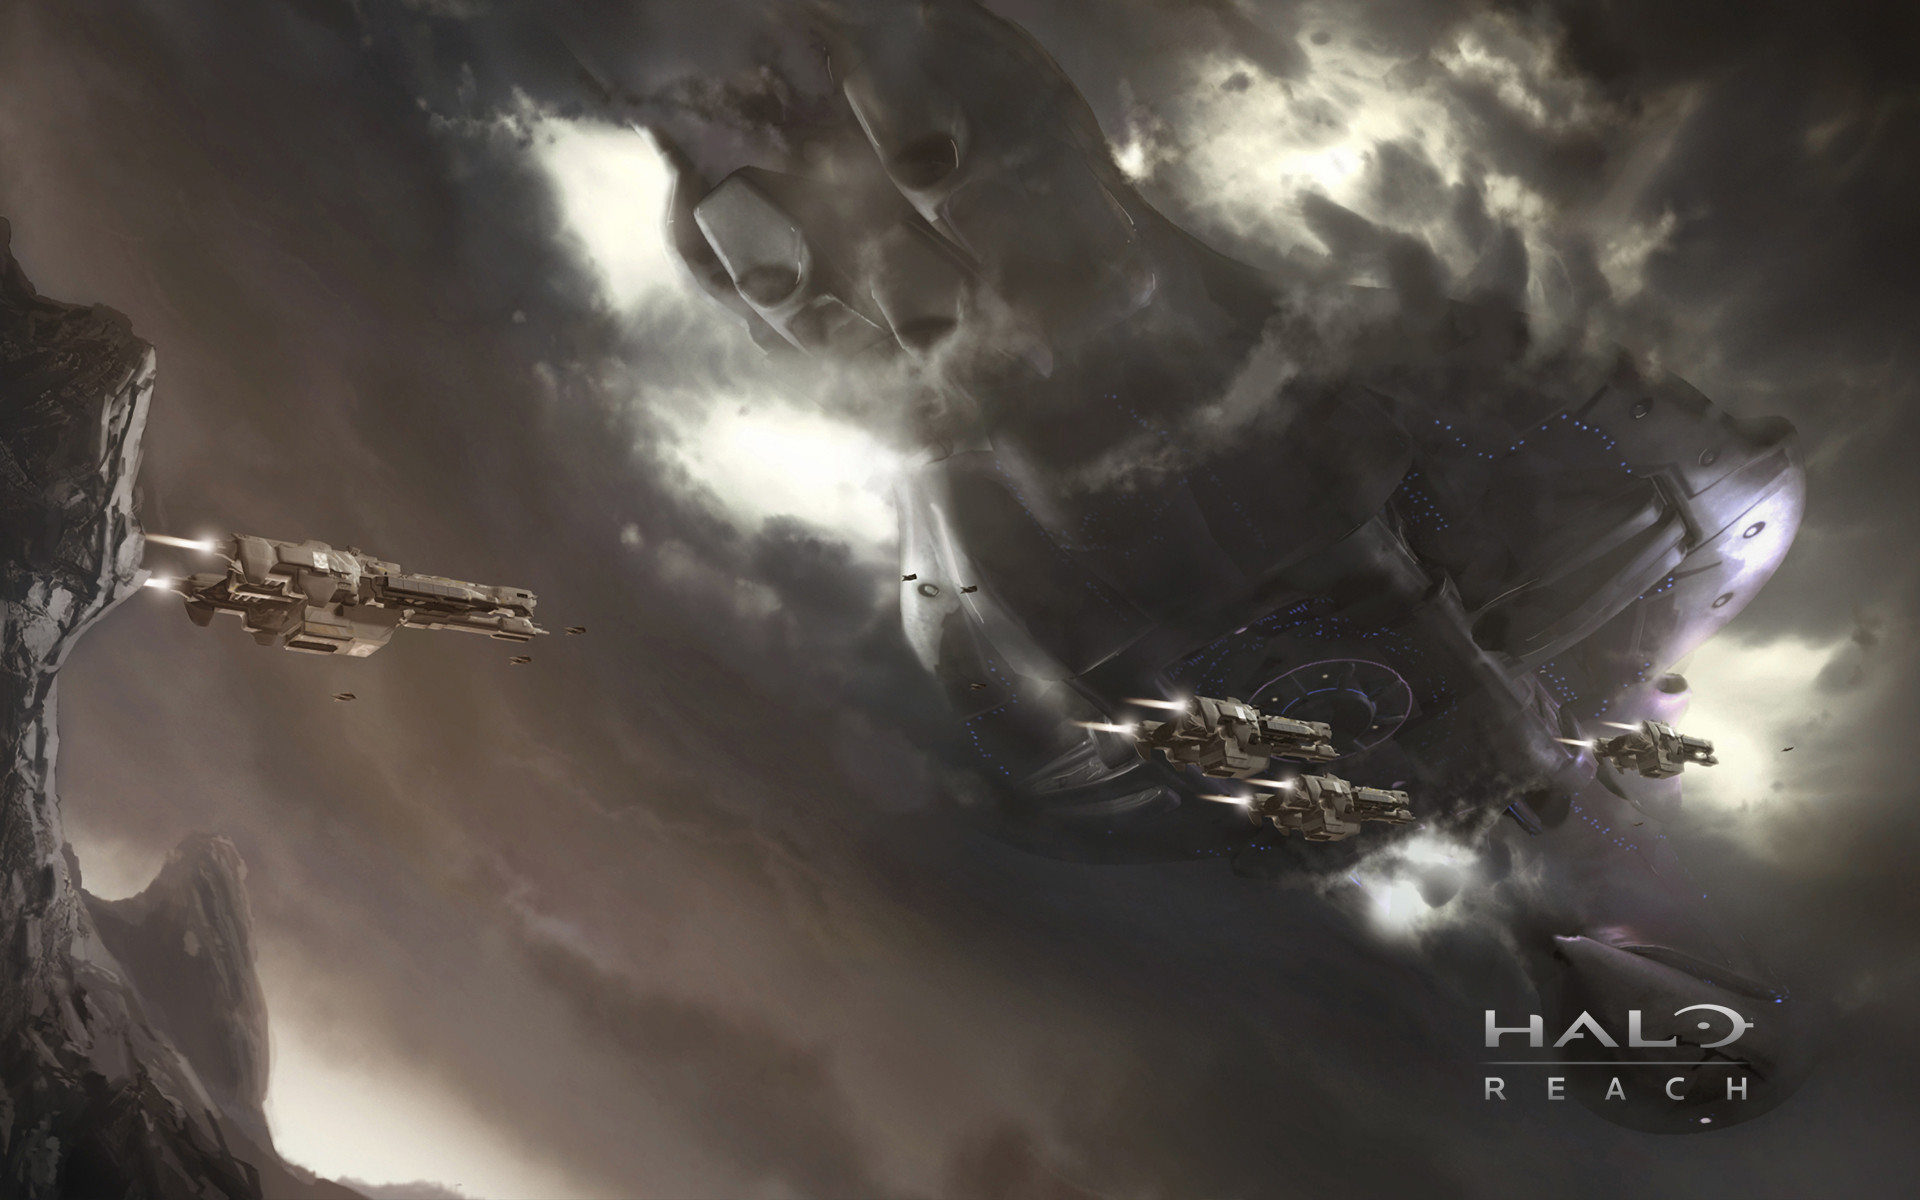 1920x1200 Halo: Reach HD Wallpaper | Background Image |  | ID:380768 -  Wallpaper Abyss